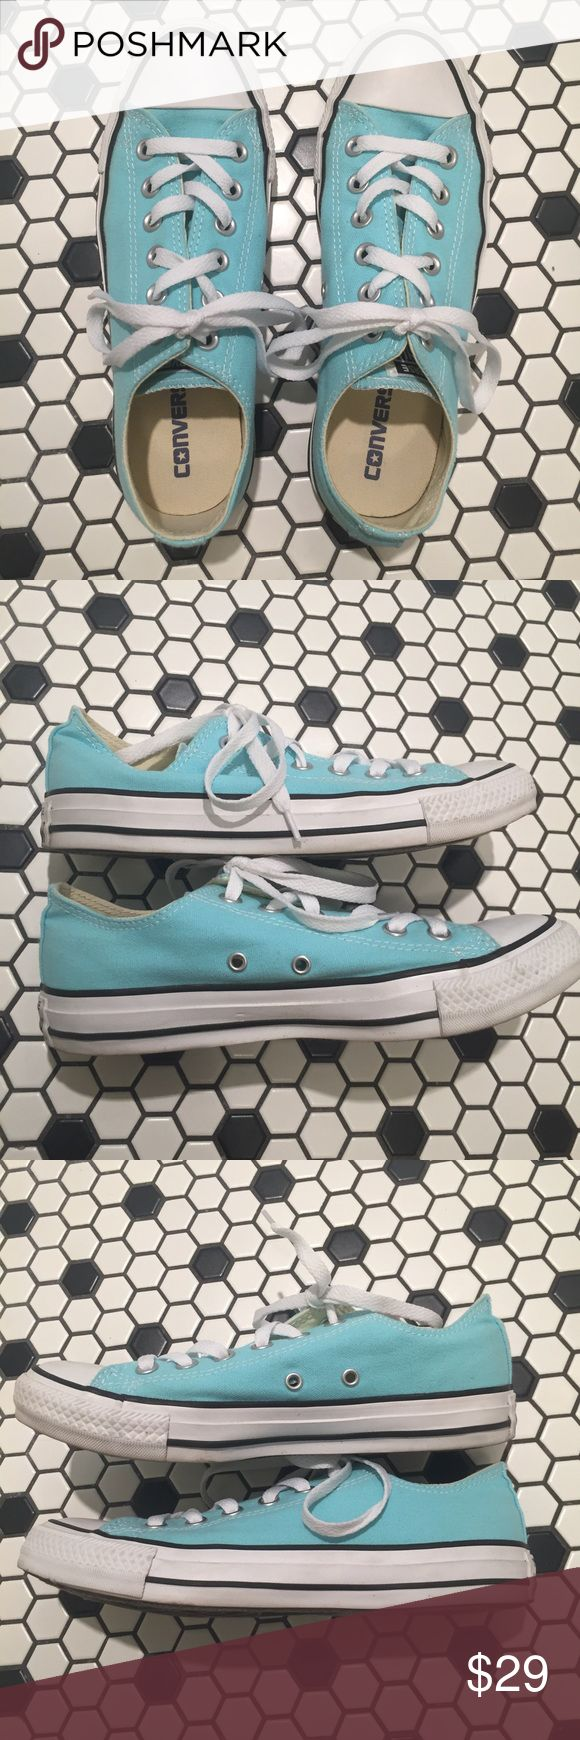 Turquoise converse Worn twice, great condition. No major flaws. Just decided I have too many tennis shoes. Women's size 7 and I normally wear an 8- converse runs big. If you're a 7.5/8 normally these will fit fine. Happy to answer questions for you. Bundle to save! Converse Shoes Sneakers